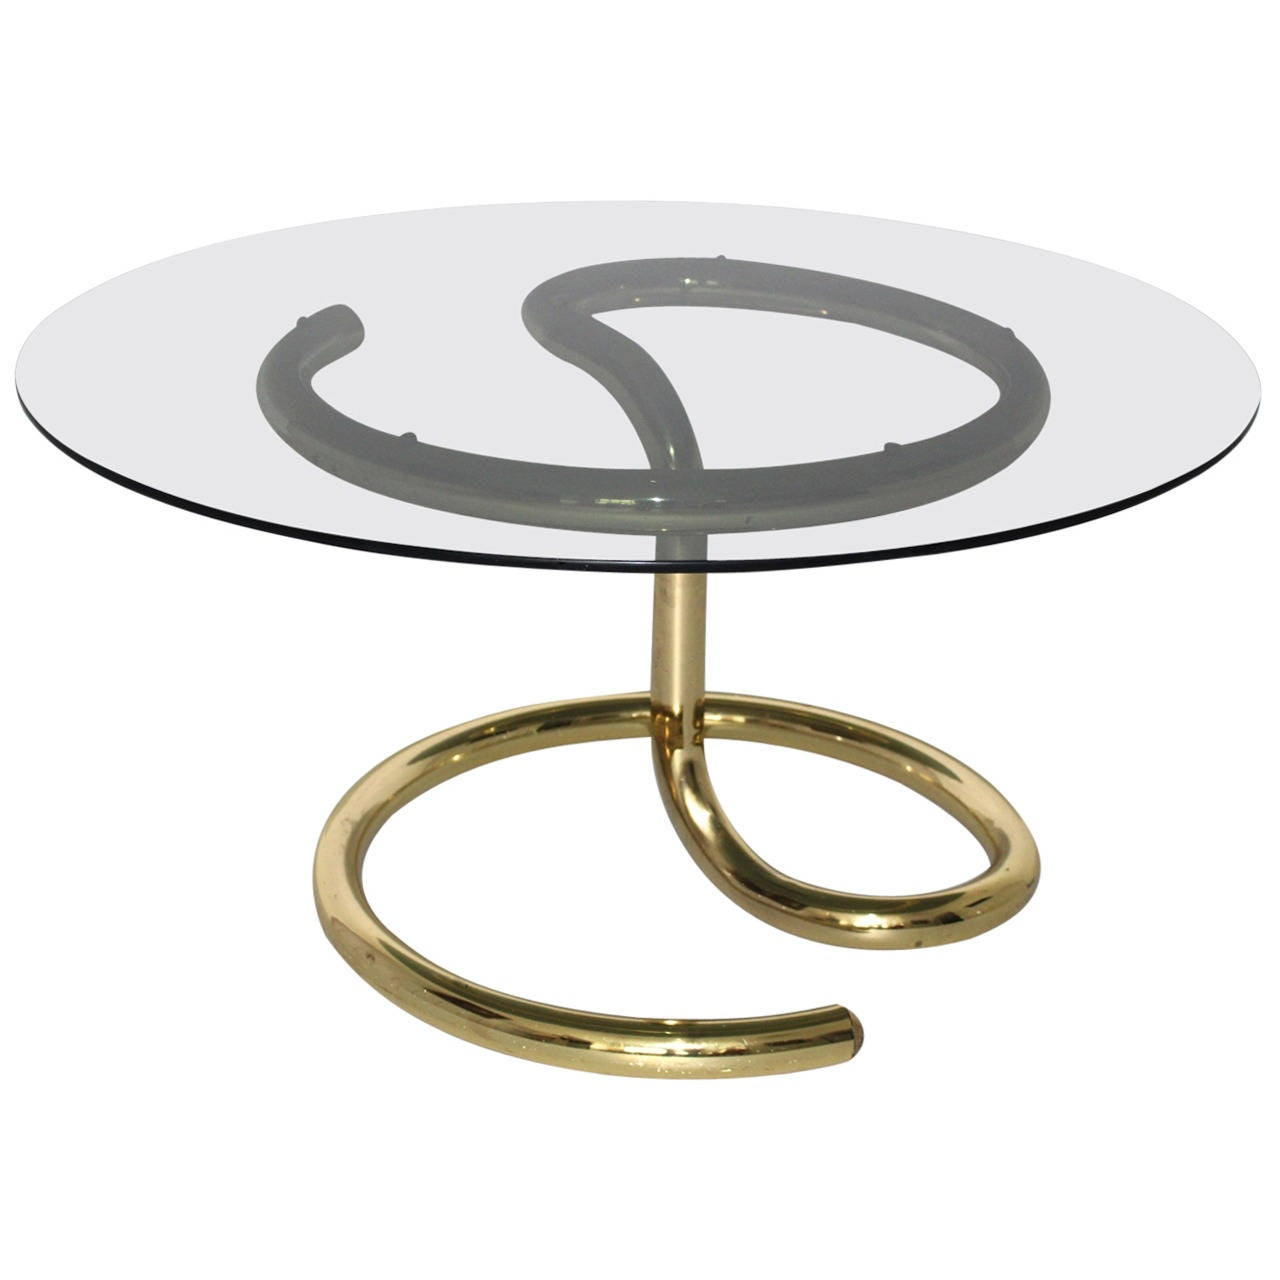 Space Age Brass Plated Coffee Table Anaconda 1970 For Sale